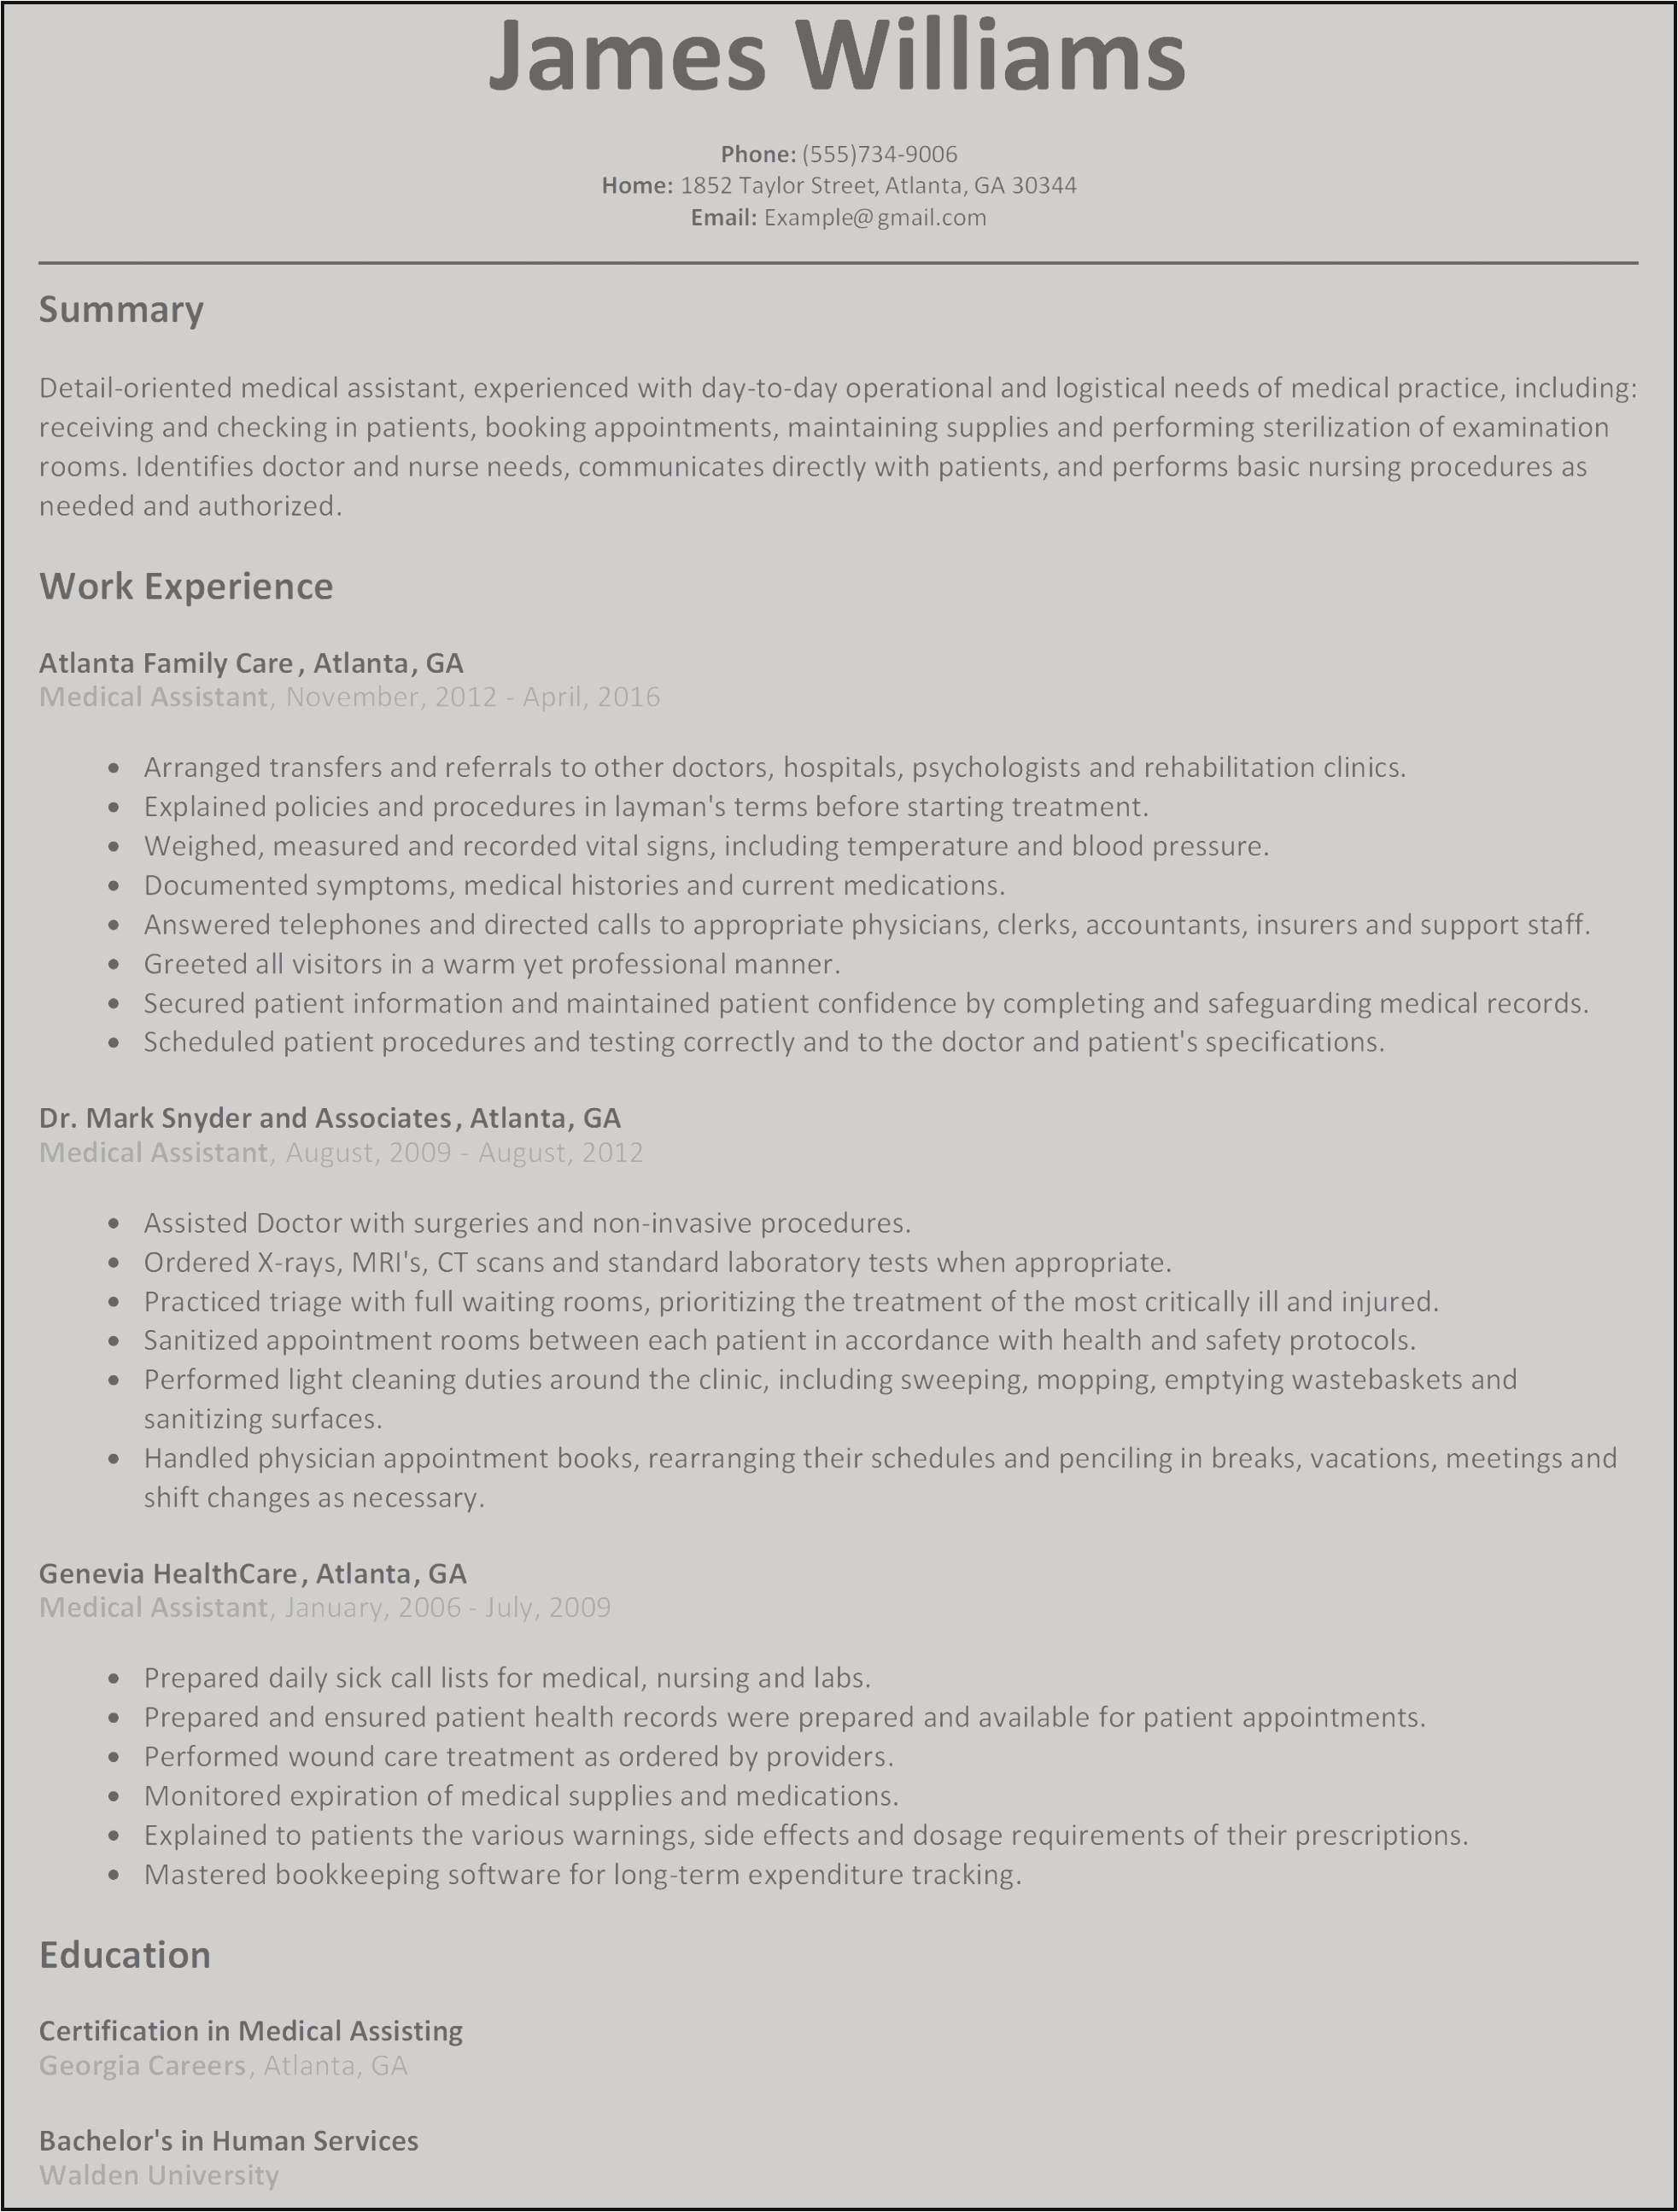 Medical assistant Summary Resume - 29 New Practice Resume format